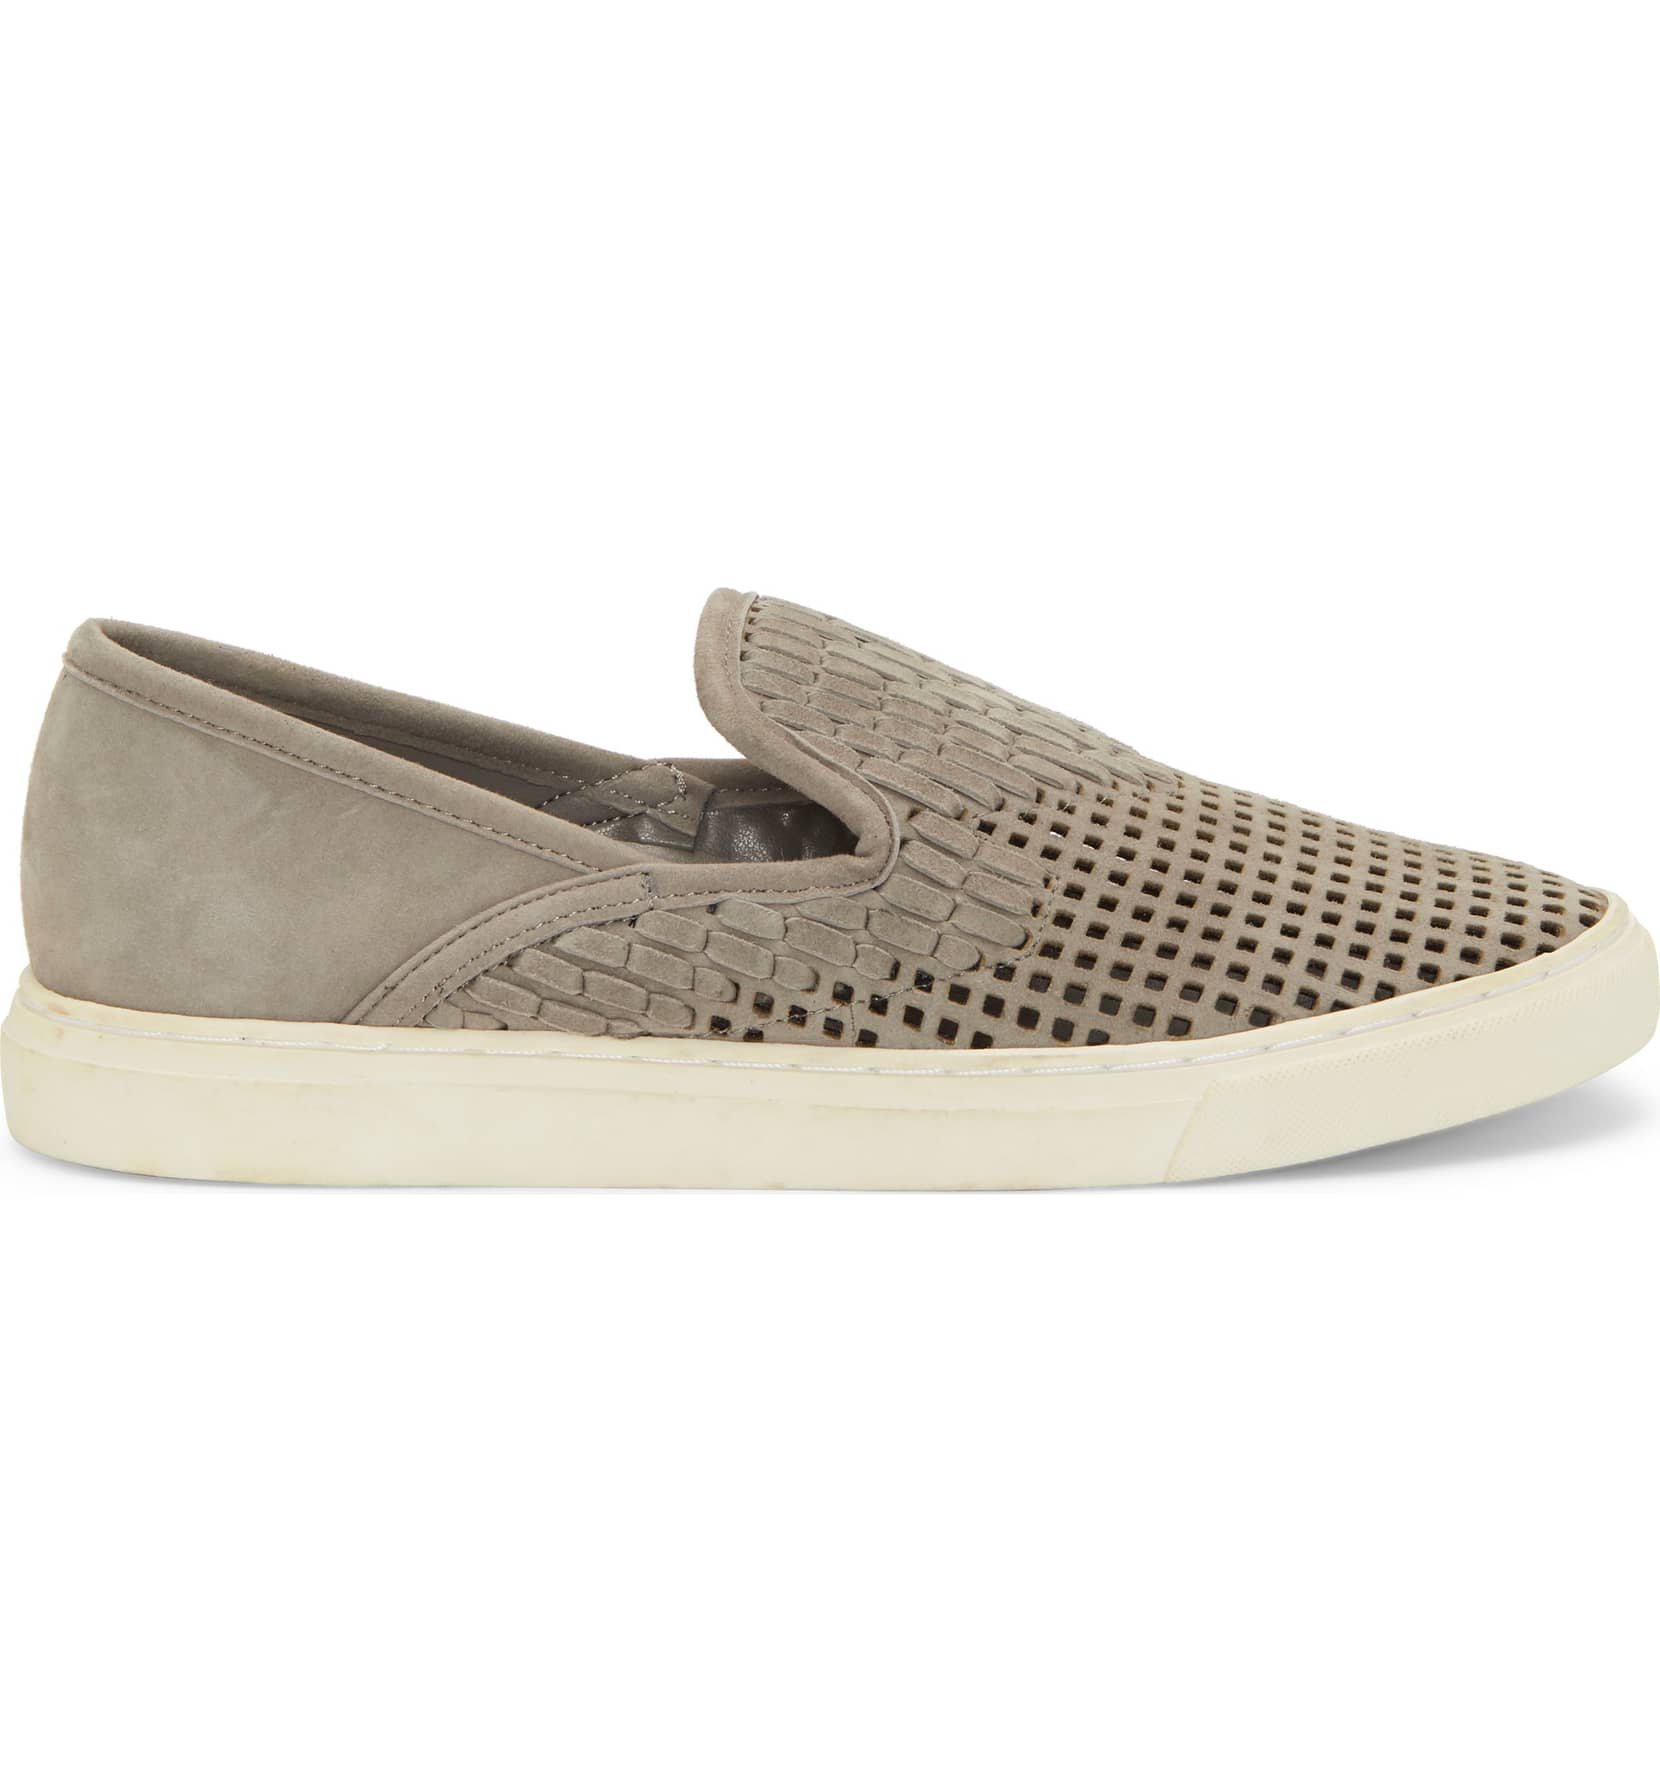 Vince-Camuto-Bristie-Storm-Grey-Leather-Woven-White-Sole-Slip-On-Sneakers thumbnail 27